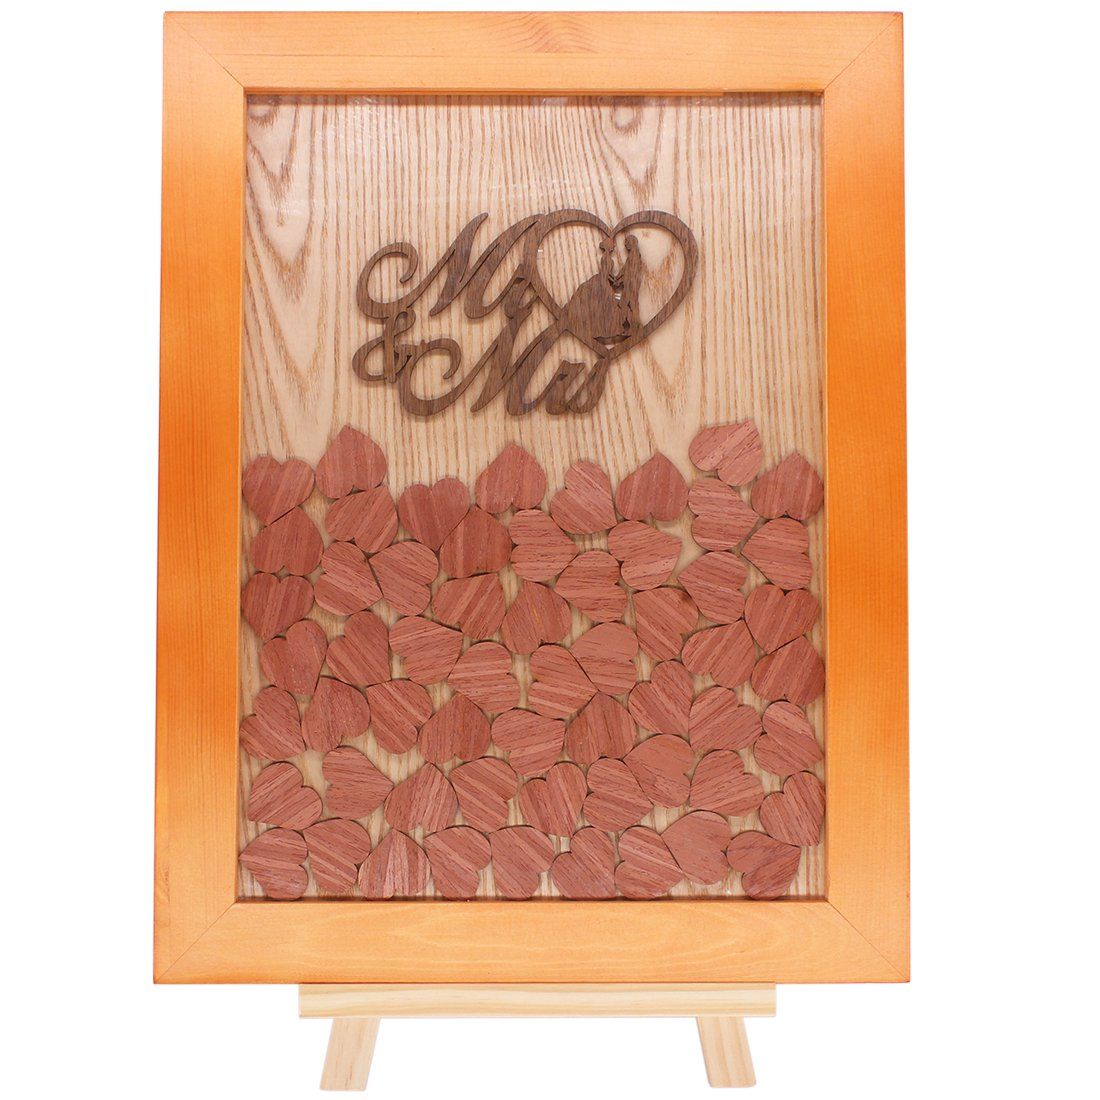 Creawoo Nature Wooden Frame Wedding Guest Book, Beautiful Wedding Decoration 96pcs Wooden Drop Heart Shape Ornaments With Wood Stand